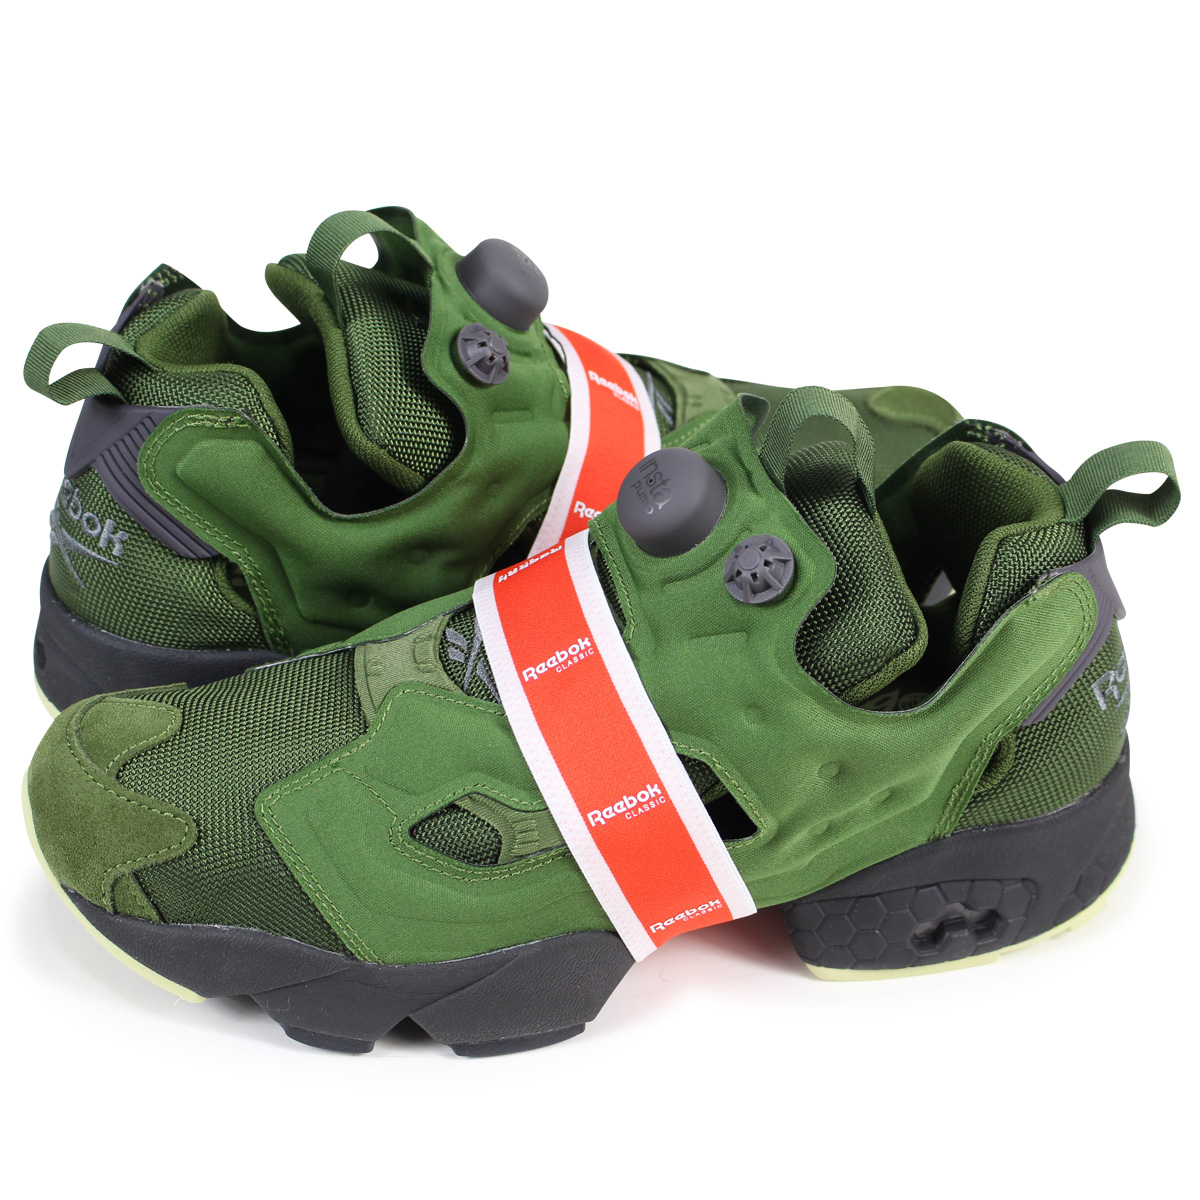 02542a2ed9a6 Reebok INSTAPUMP FURY OG MB リーボックポンプフューリースニーカー BS9729 men gap Dis green  load  planned Shinnyu load in reservation product 1 26 containing  ...